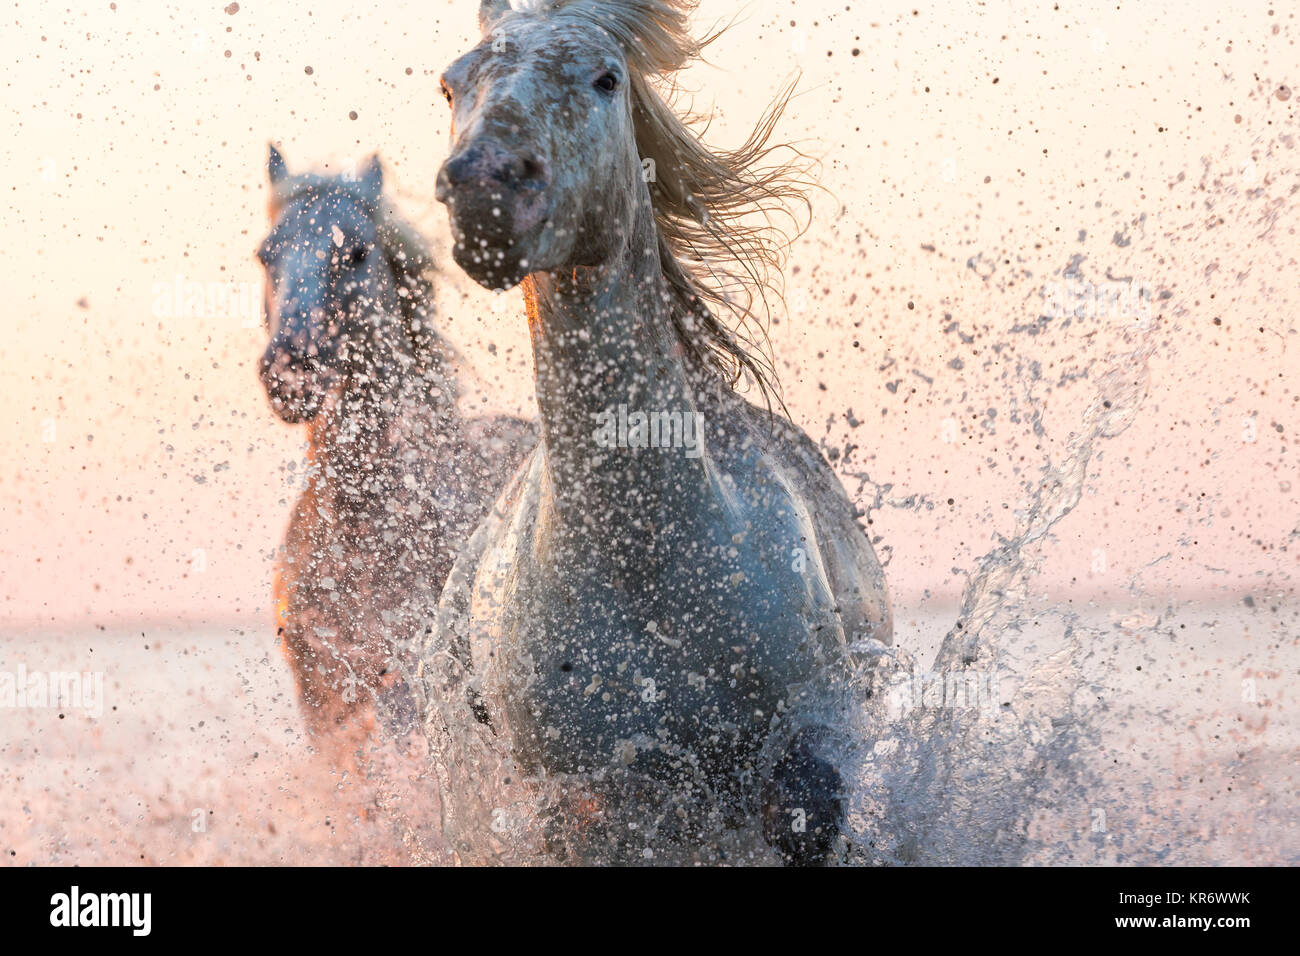 Wild Horse Running High Resolution Stock Photography And Images Alamy